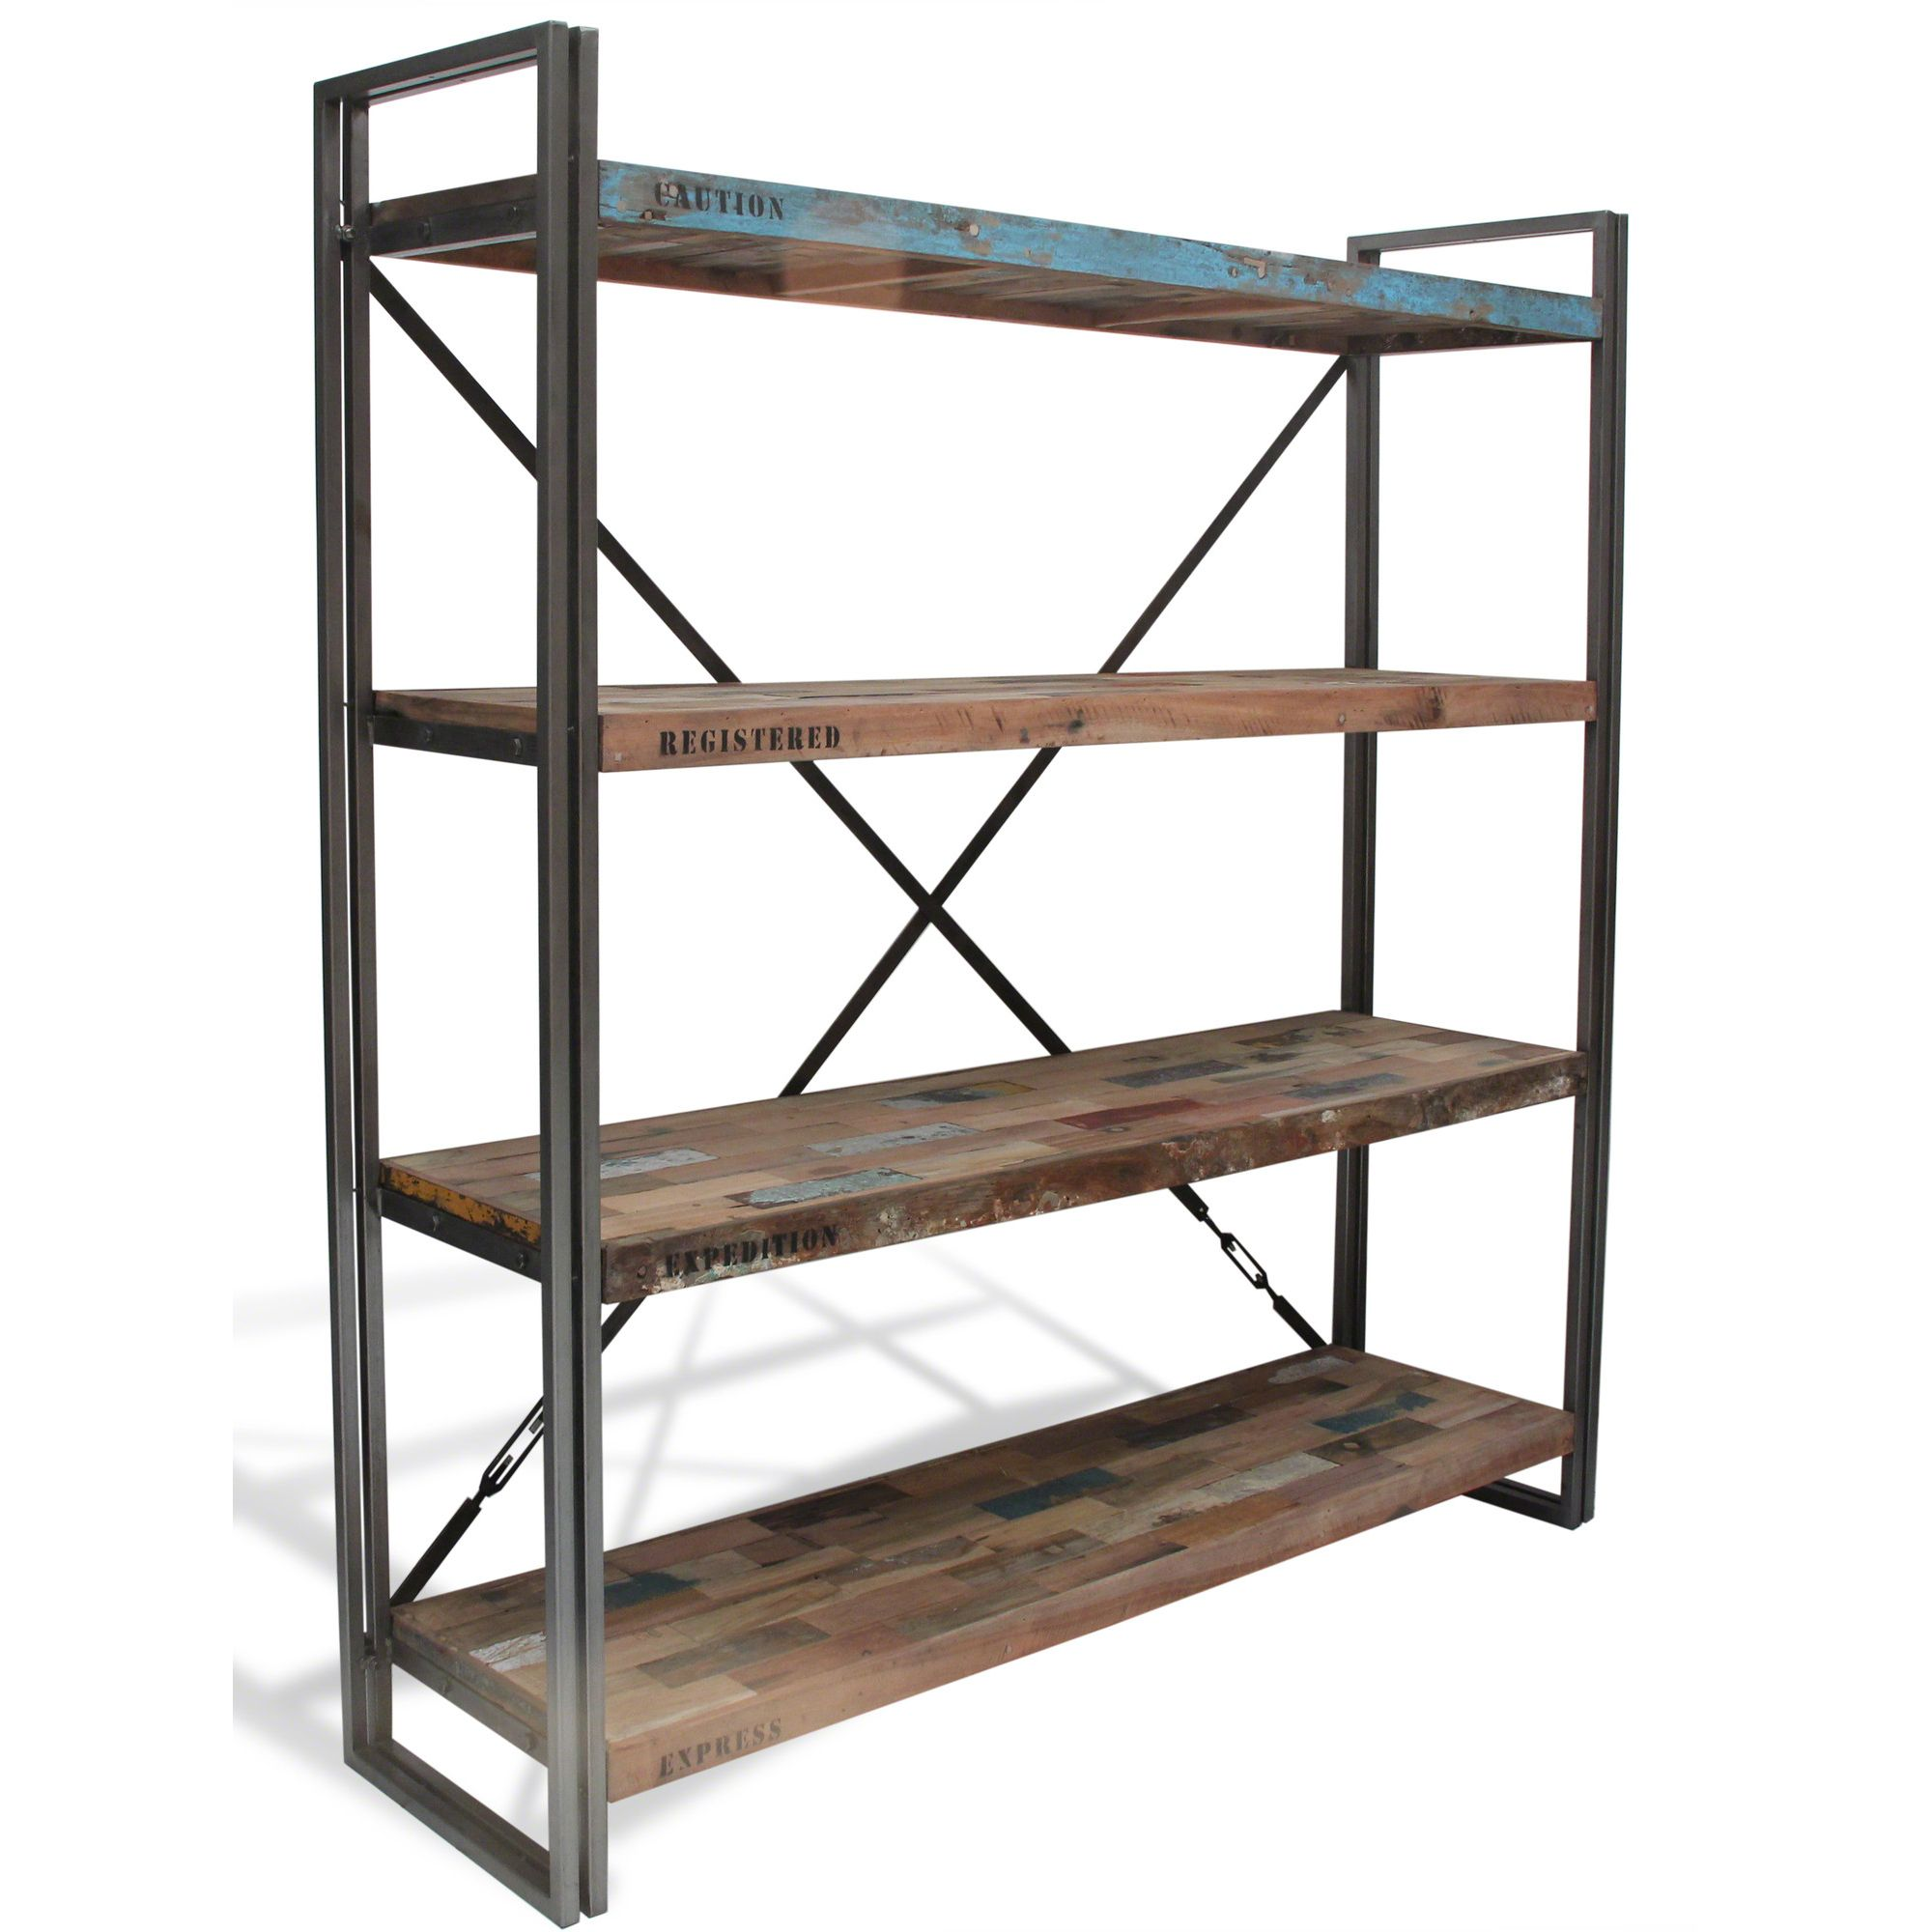 Oceans Apart Recycled Boat Bookcase at Tesco Direct